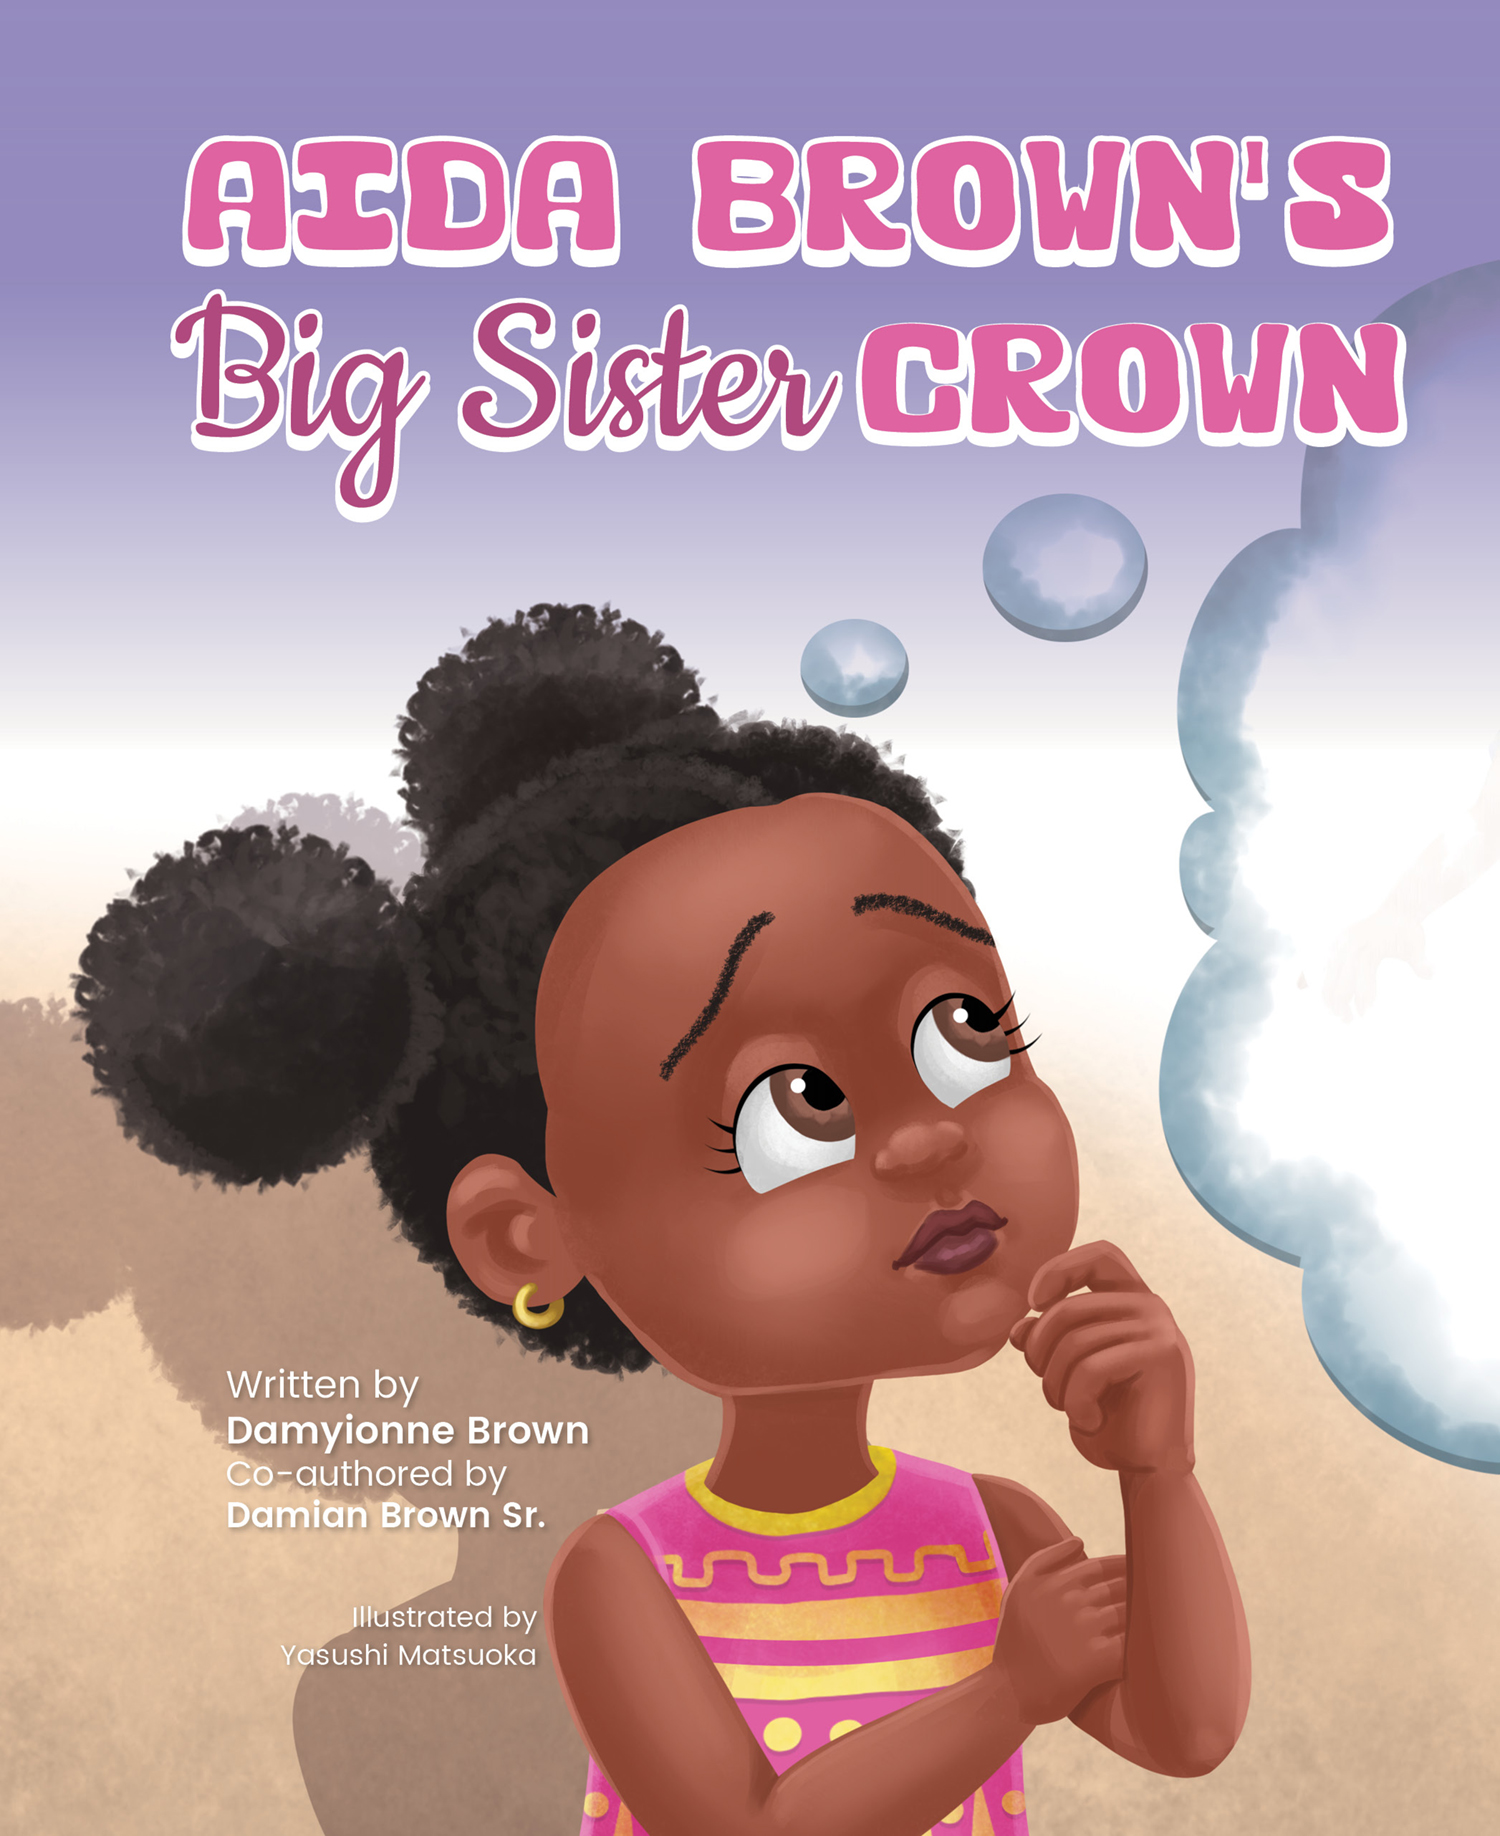 AidaBrownsBigSisterCrown_Amazon